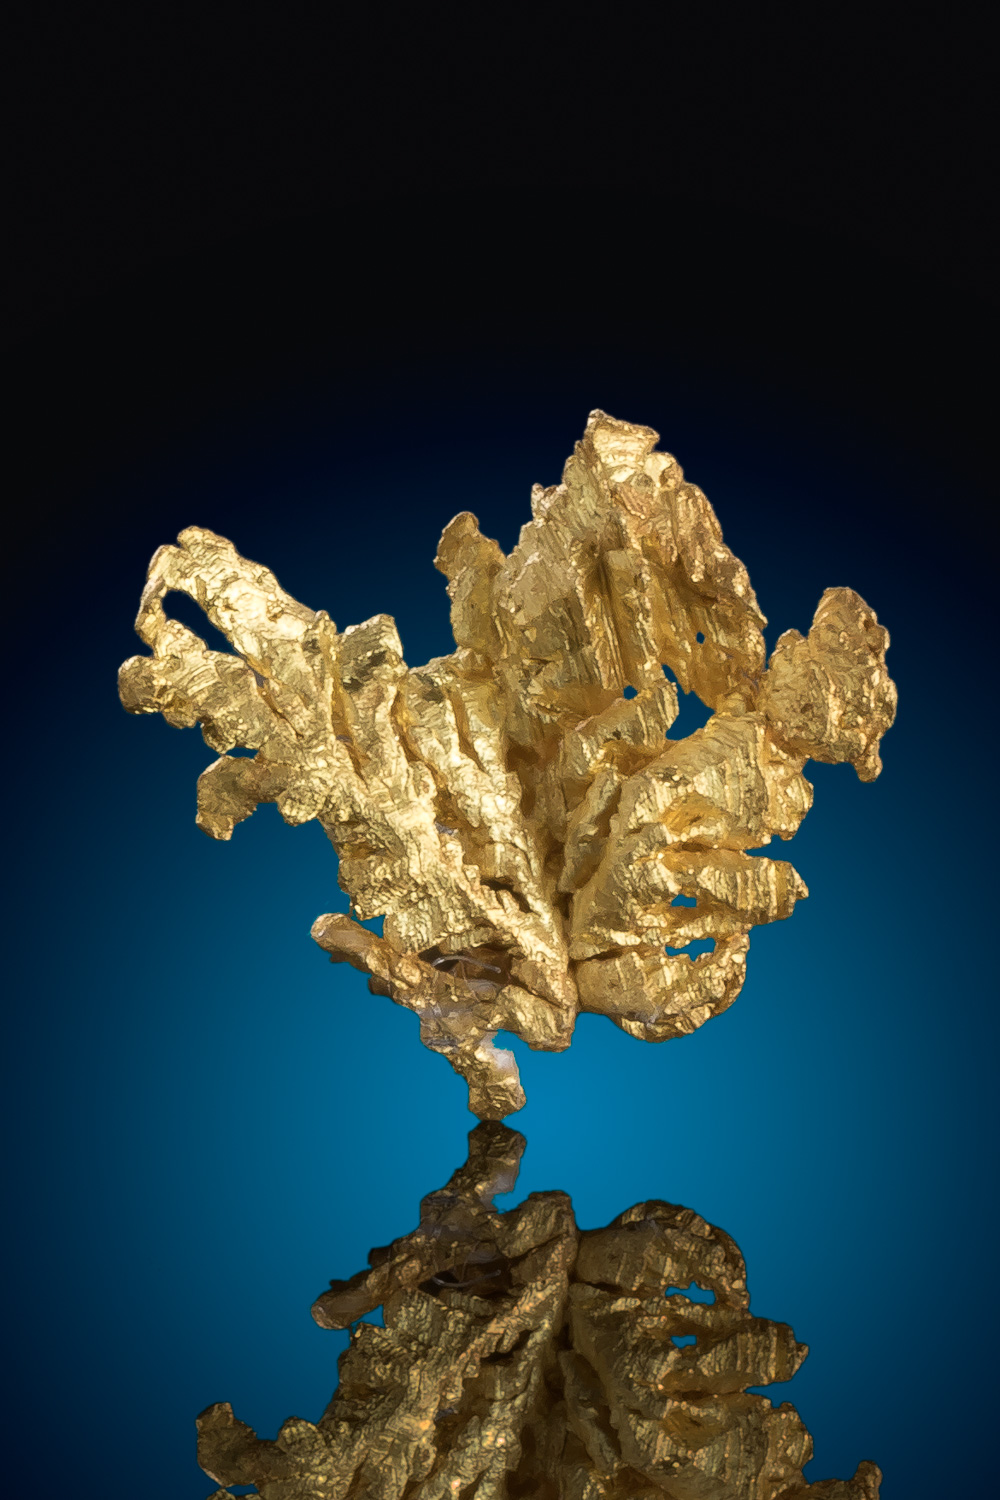 Brilliant and Sharp Gold Crystal - Mariposa County